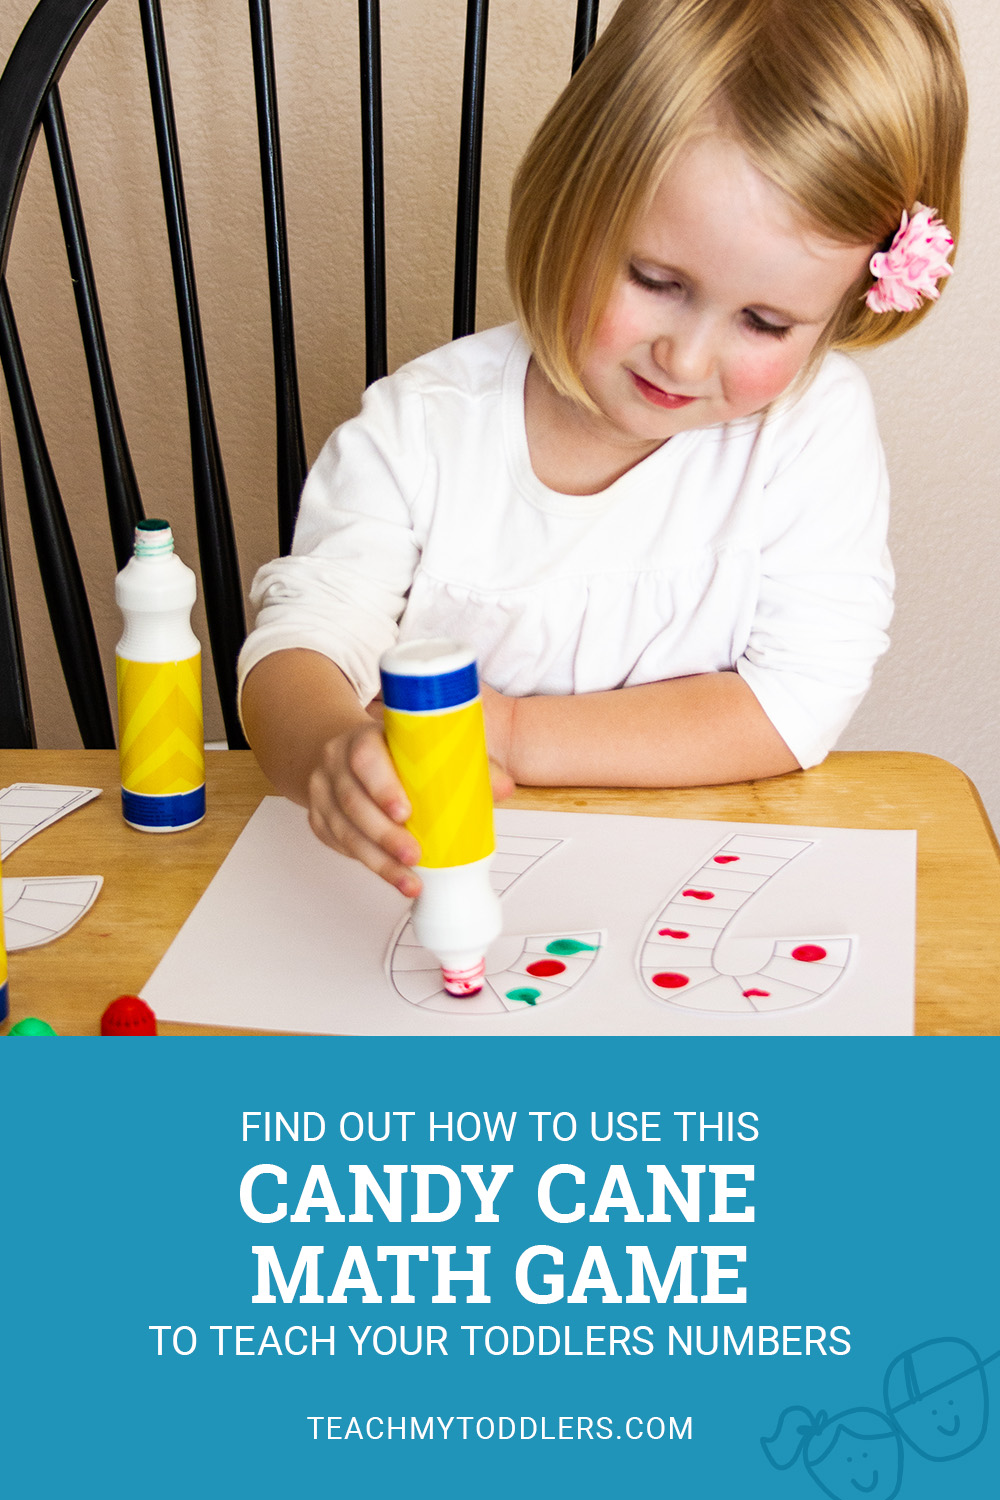 Find out how to use this candy cane math game to teach your toddlers number